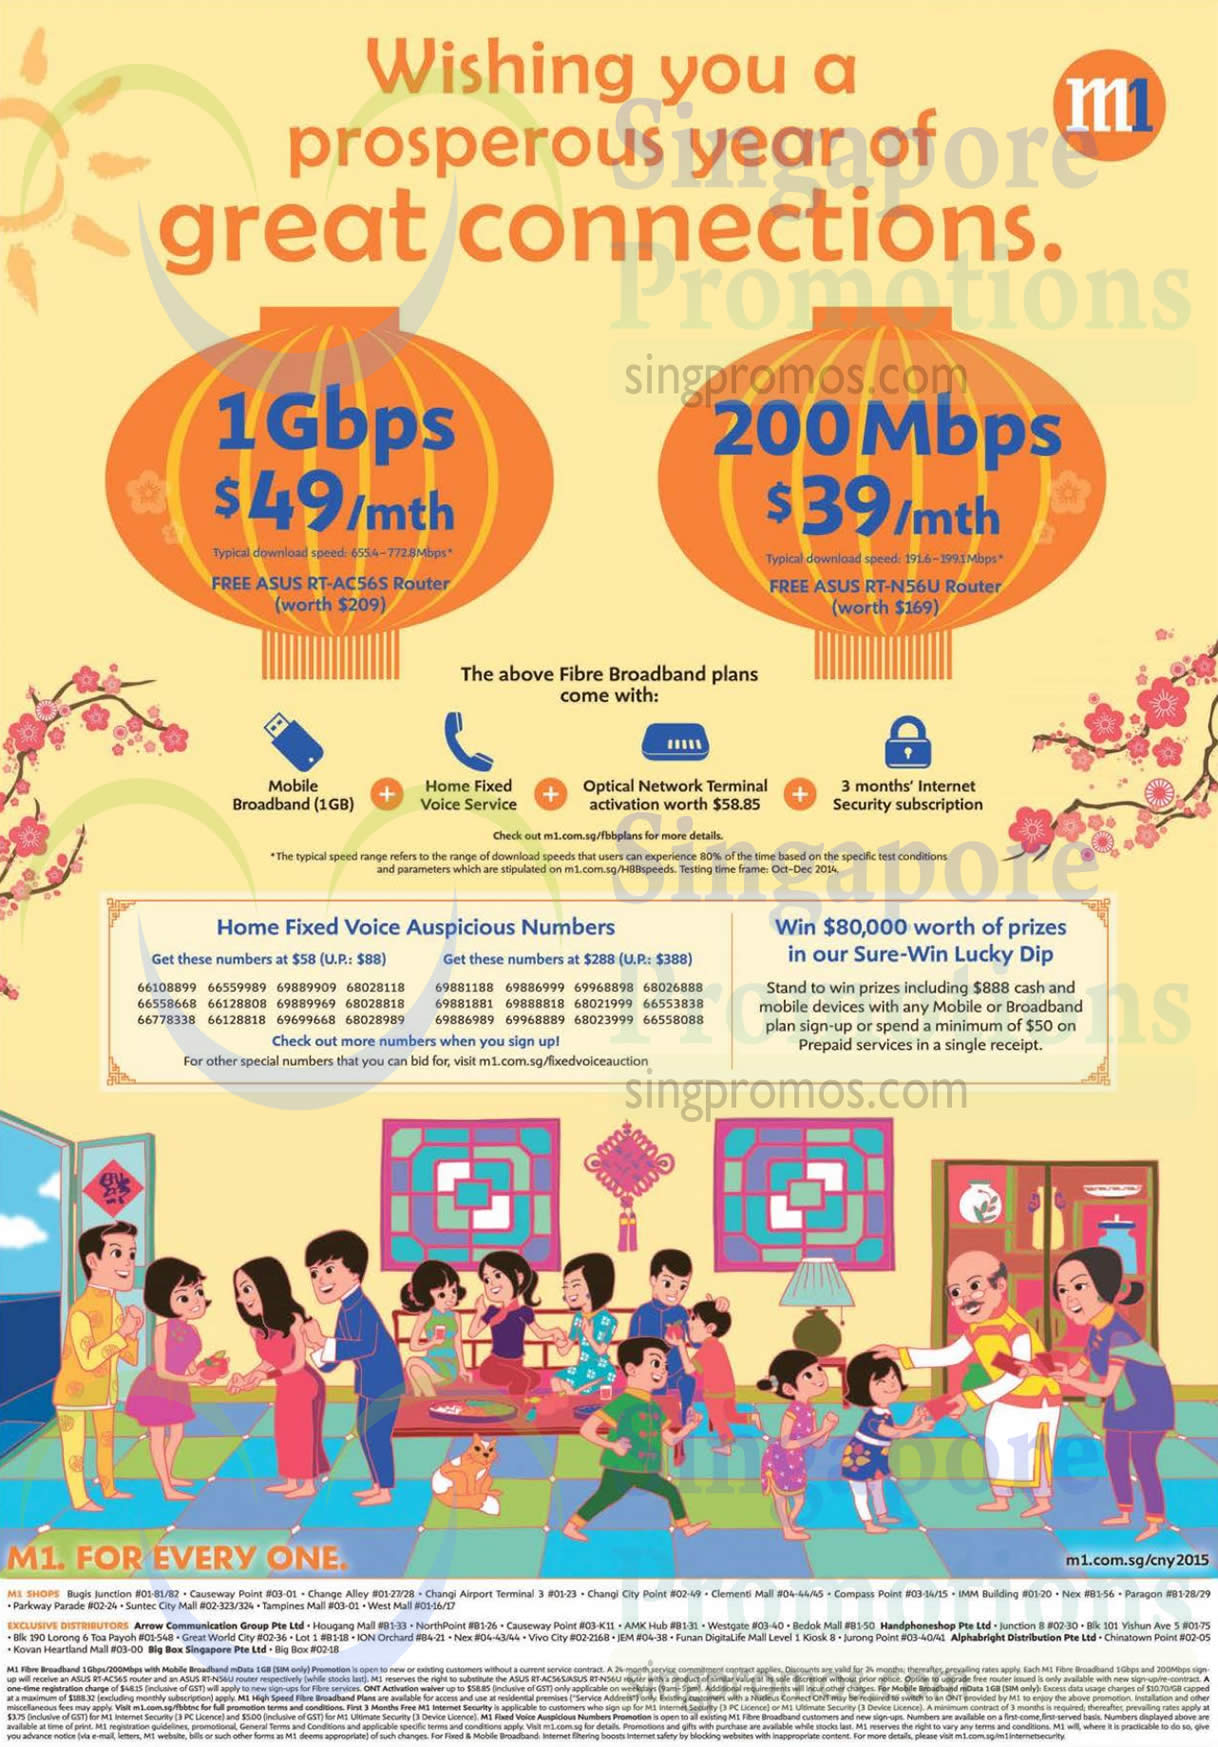 49 00 1Gbps  39 00 200Mbps, Sure-Win Lucky Dip, Auspicious Numbers